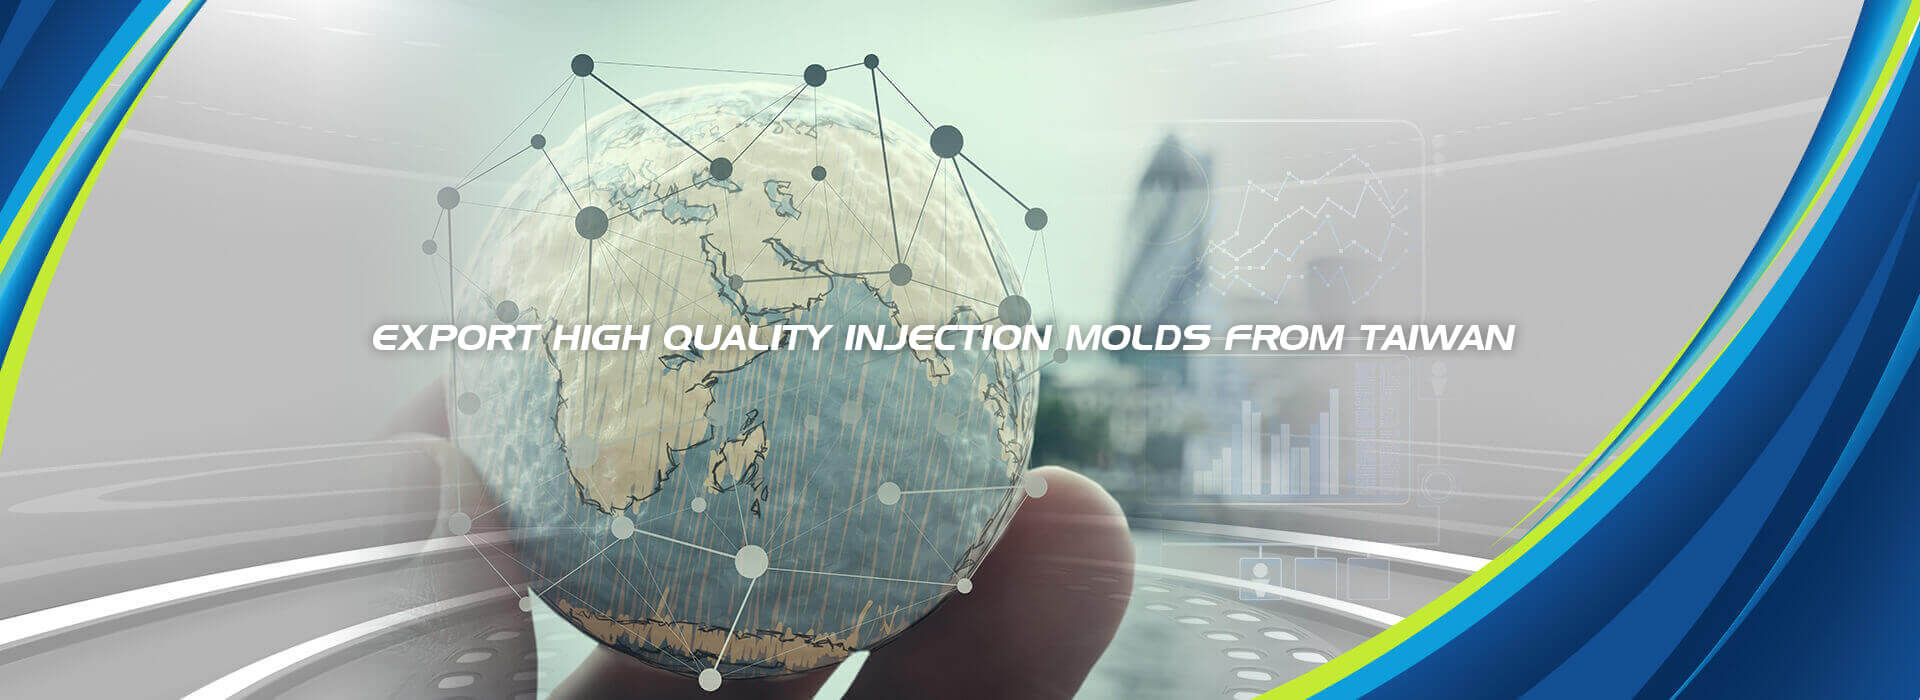 Export High Quality Injection Molds From Taiwan